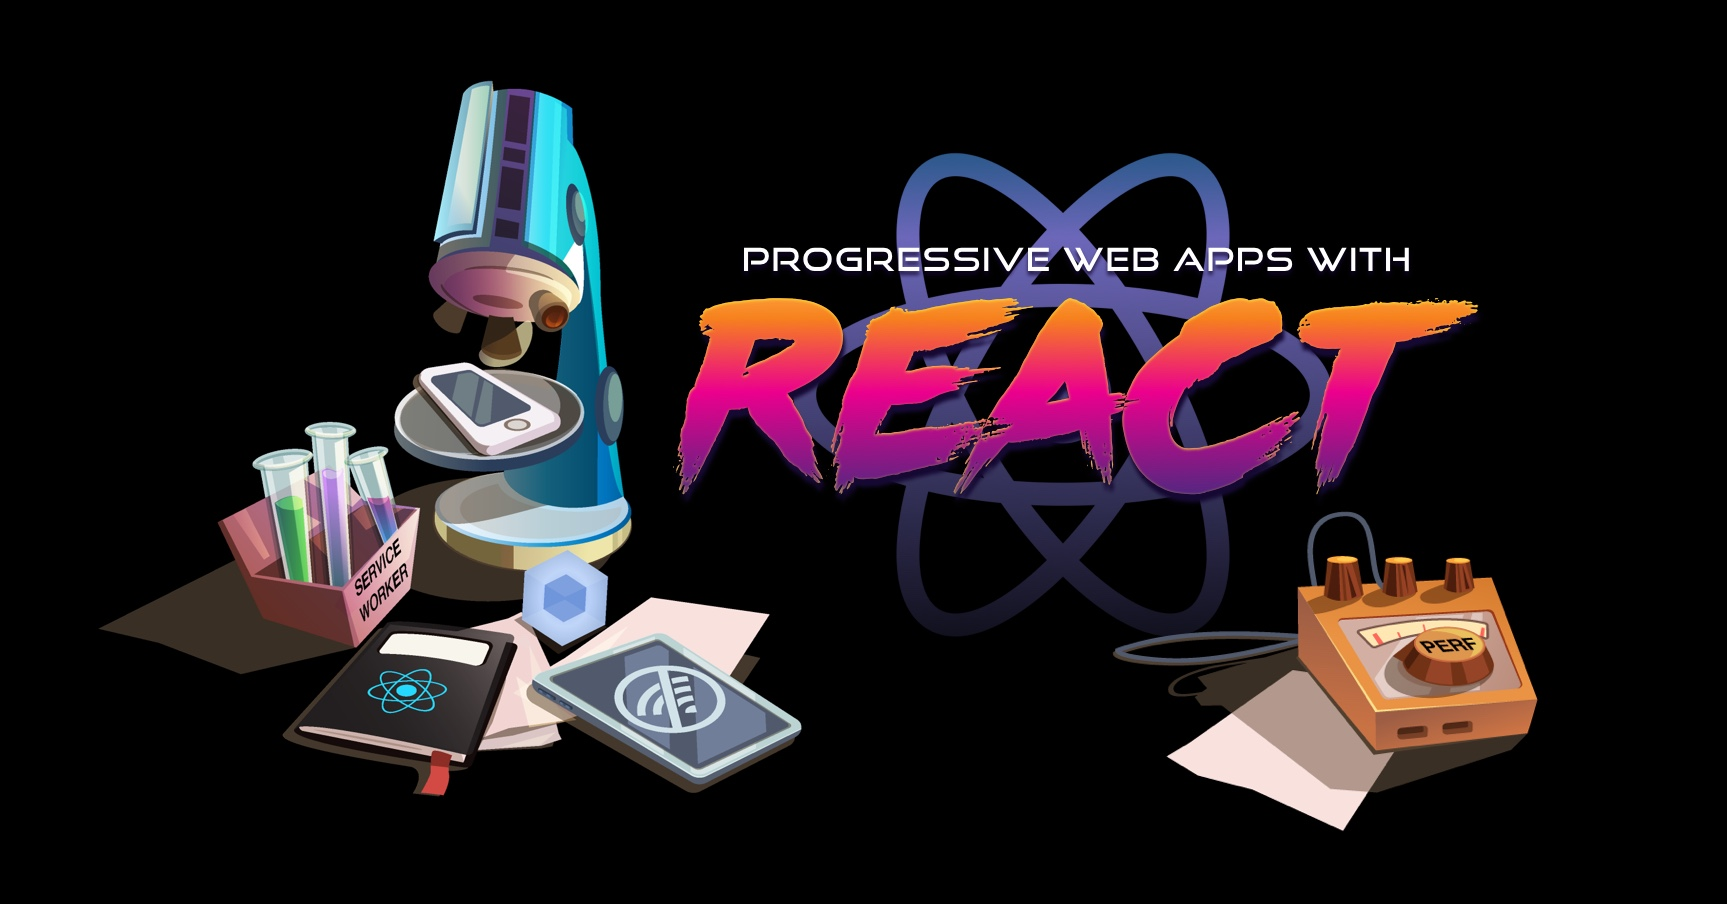 Progressive Web Apps with React